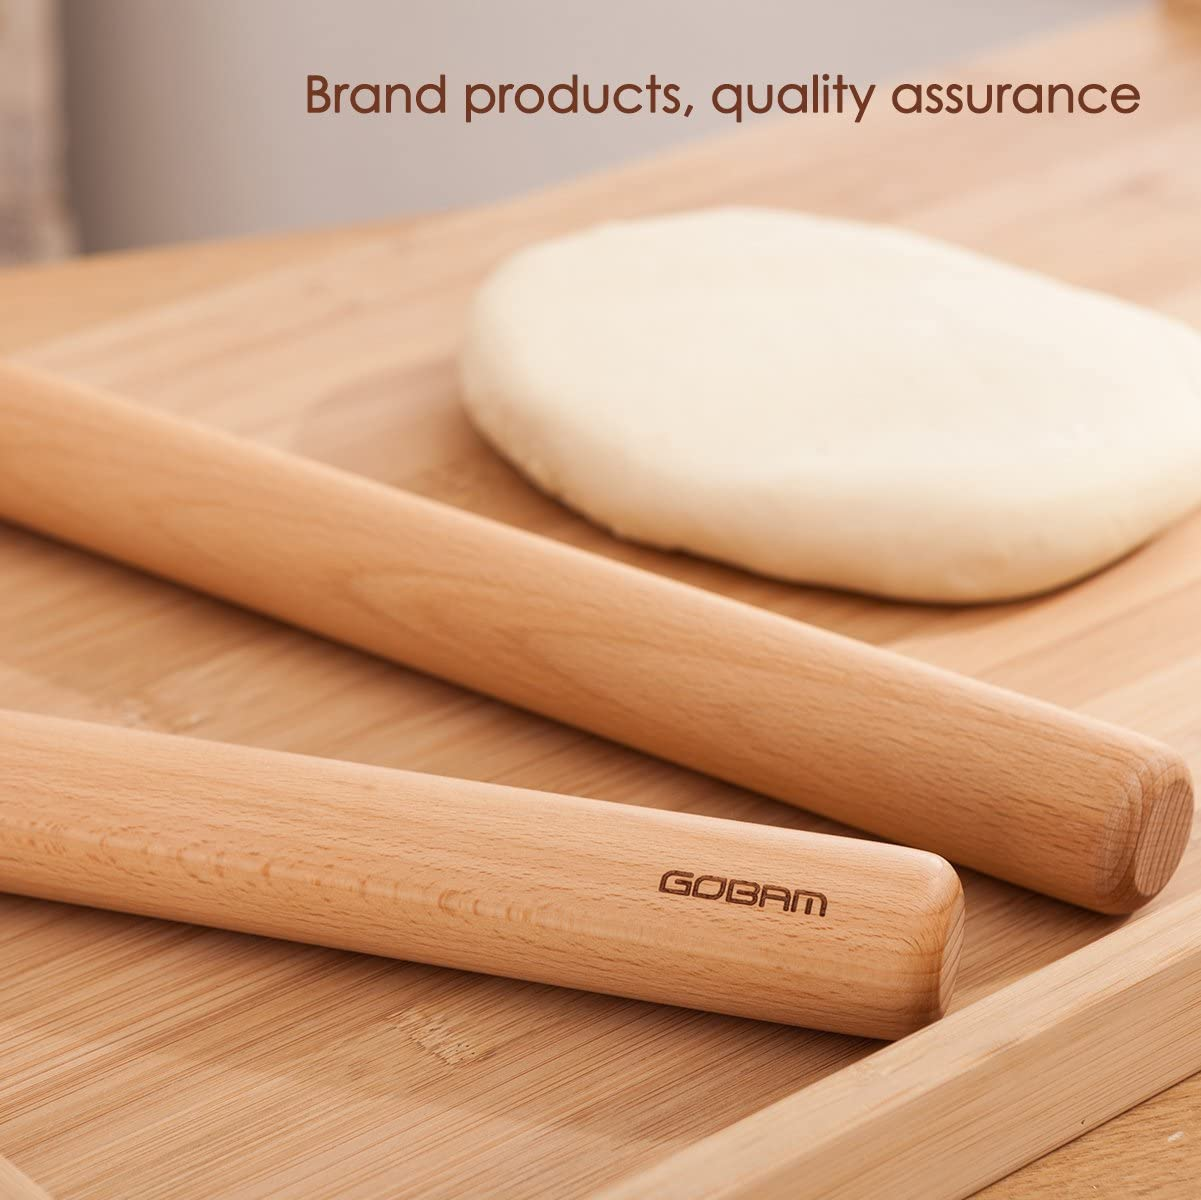 GOBAM Wood Rolling Pin Dough Roller Classic for Baking Pie Pizza,13 x 1.38inches